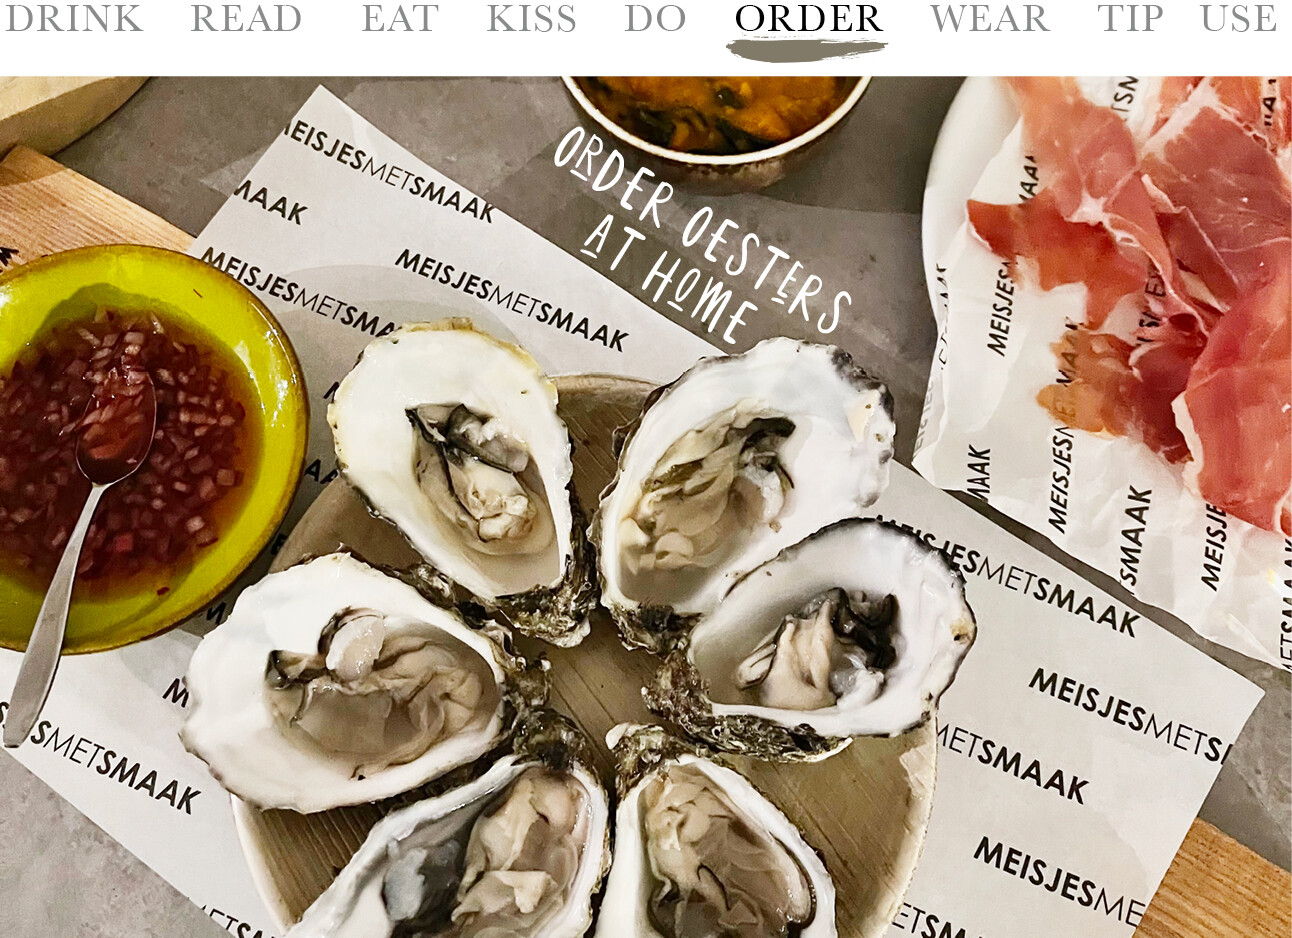 order oesters at home